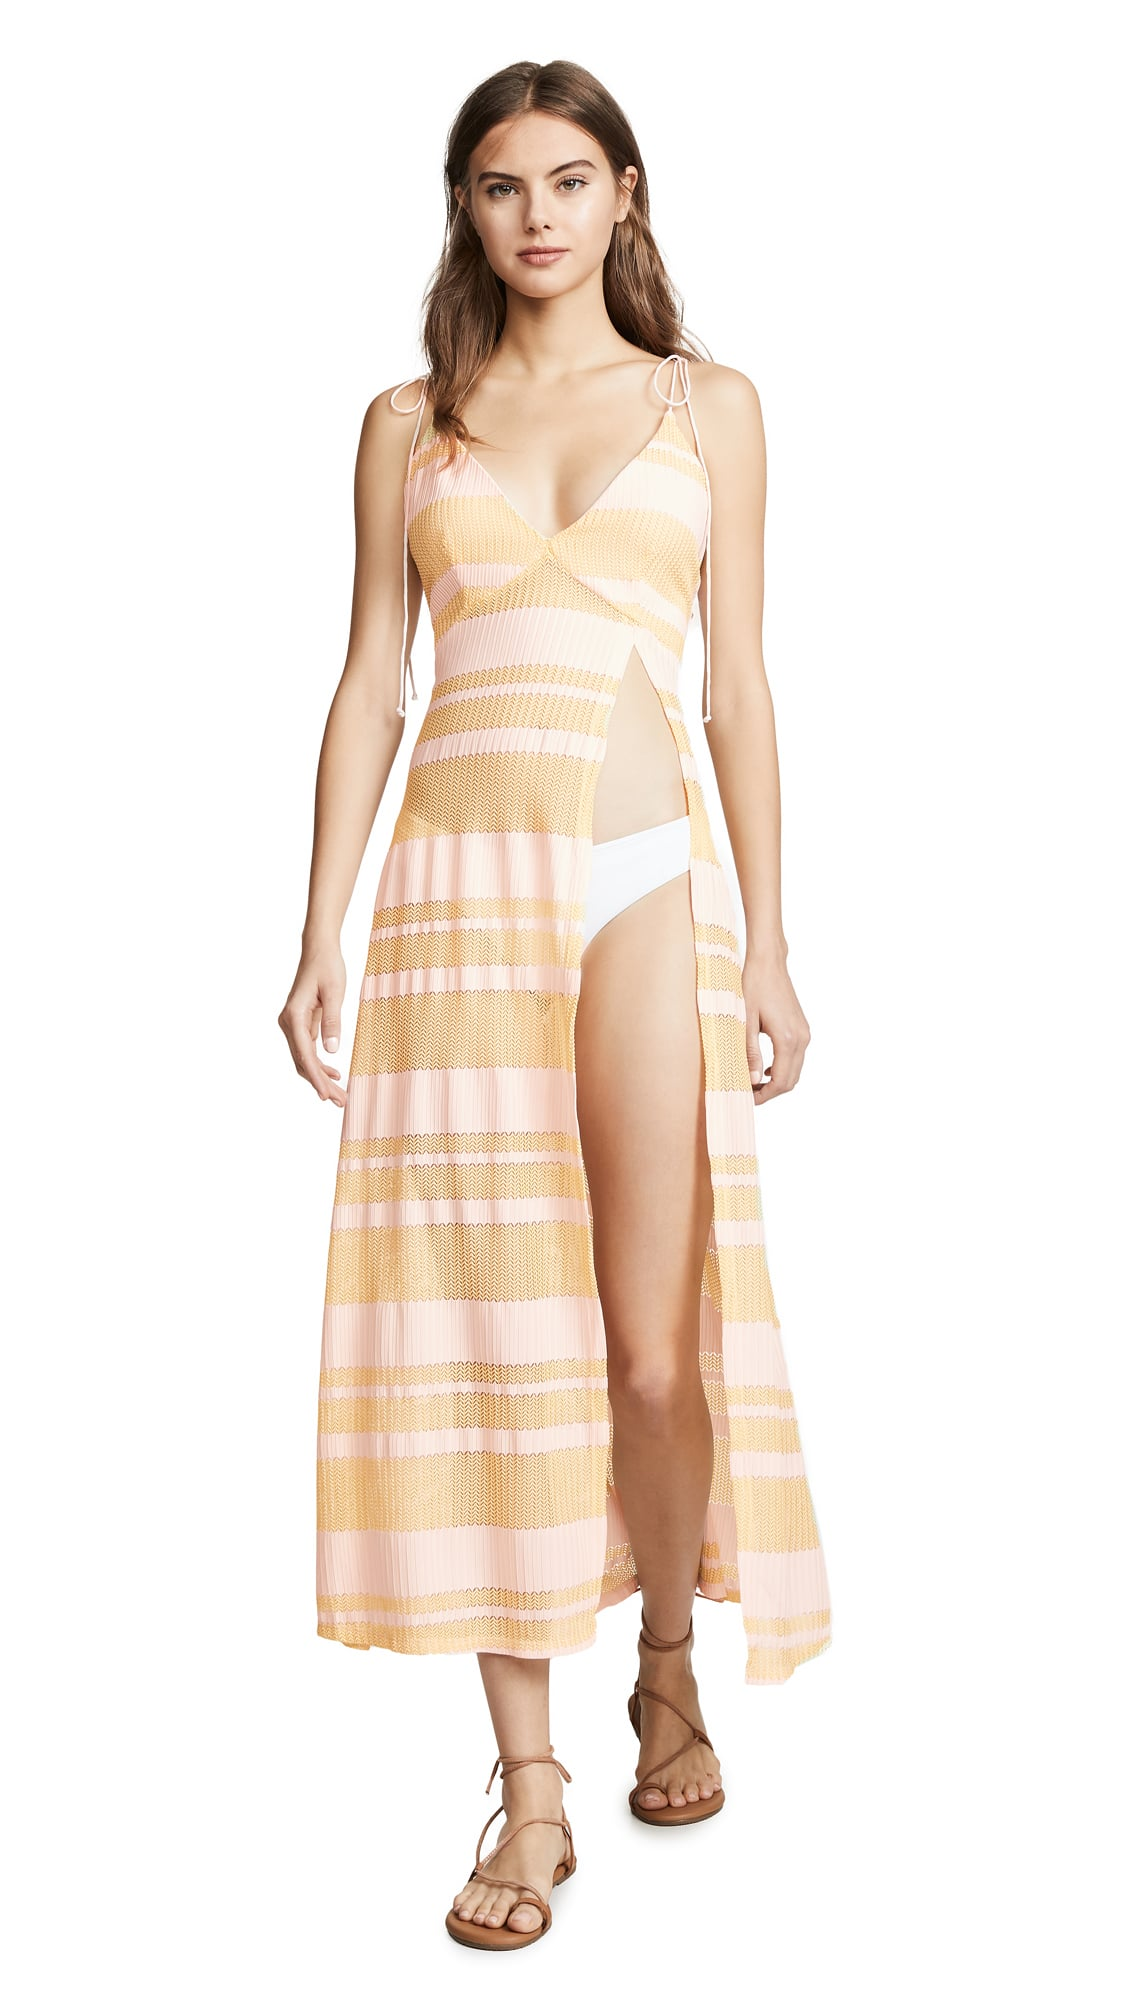 a1e0f19b236 For Love & Lemons Steph Cover-Up Dress | Swimsuits Have Met Their ...